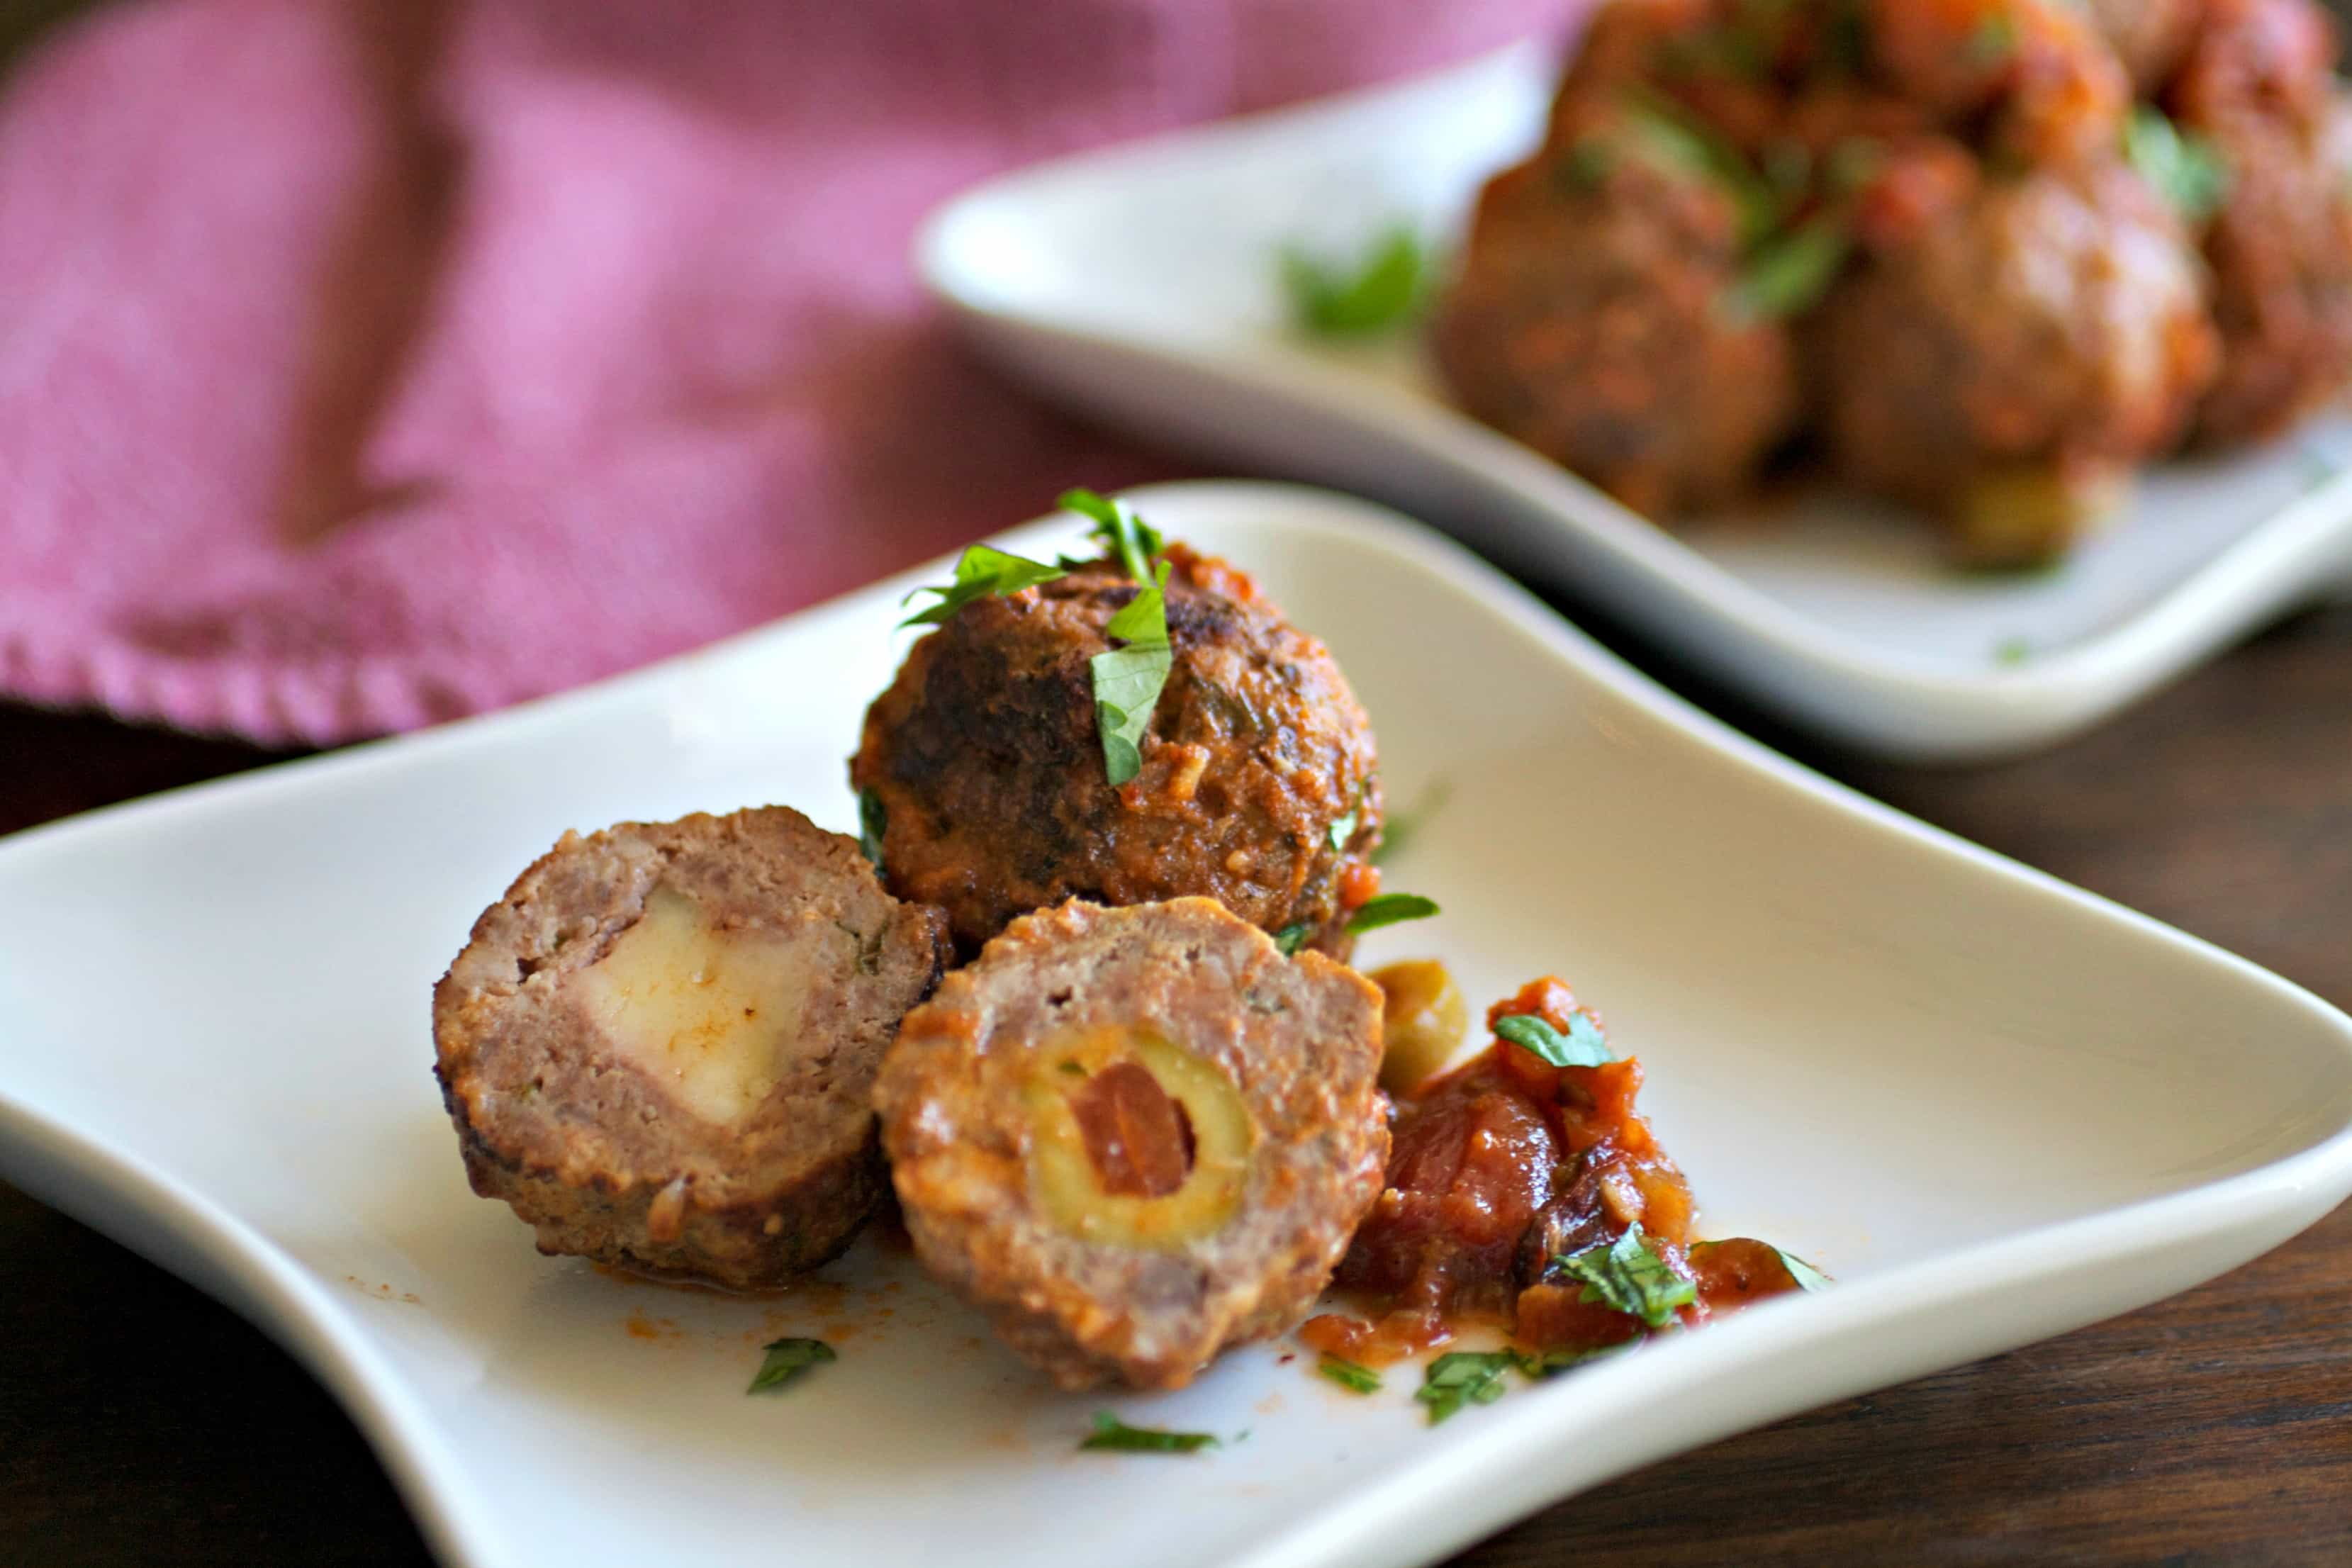 Stuffed meatballs cut in half on a plate